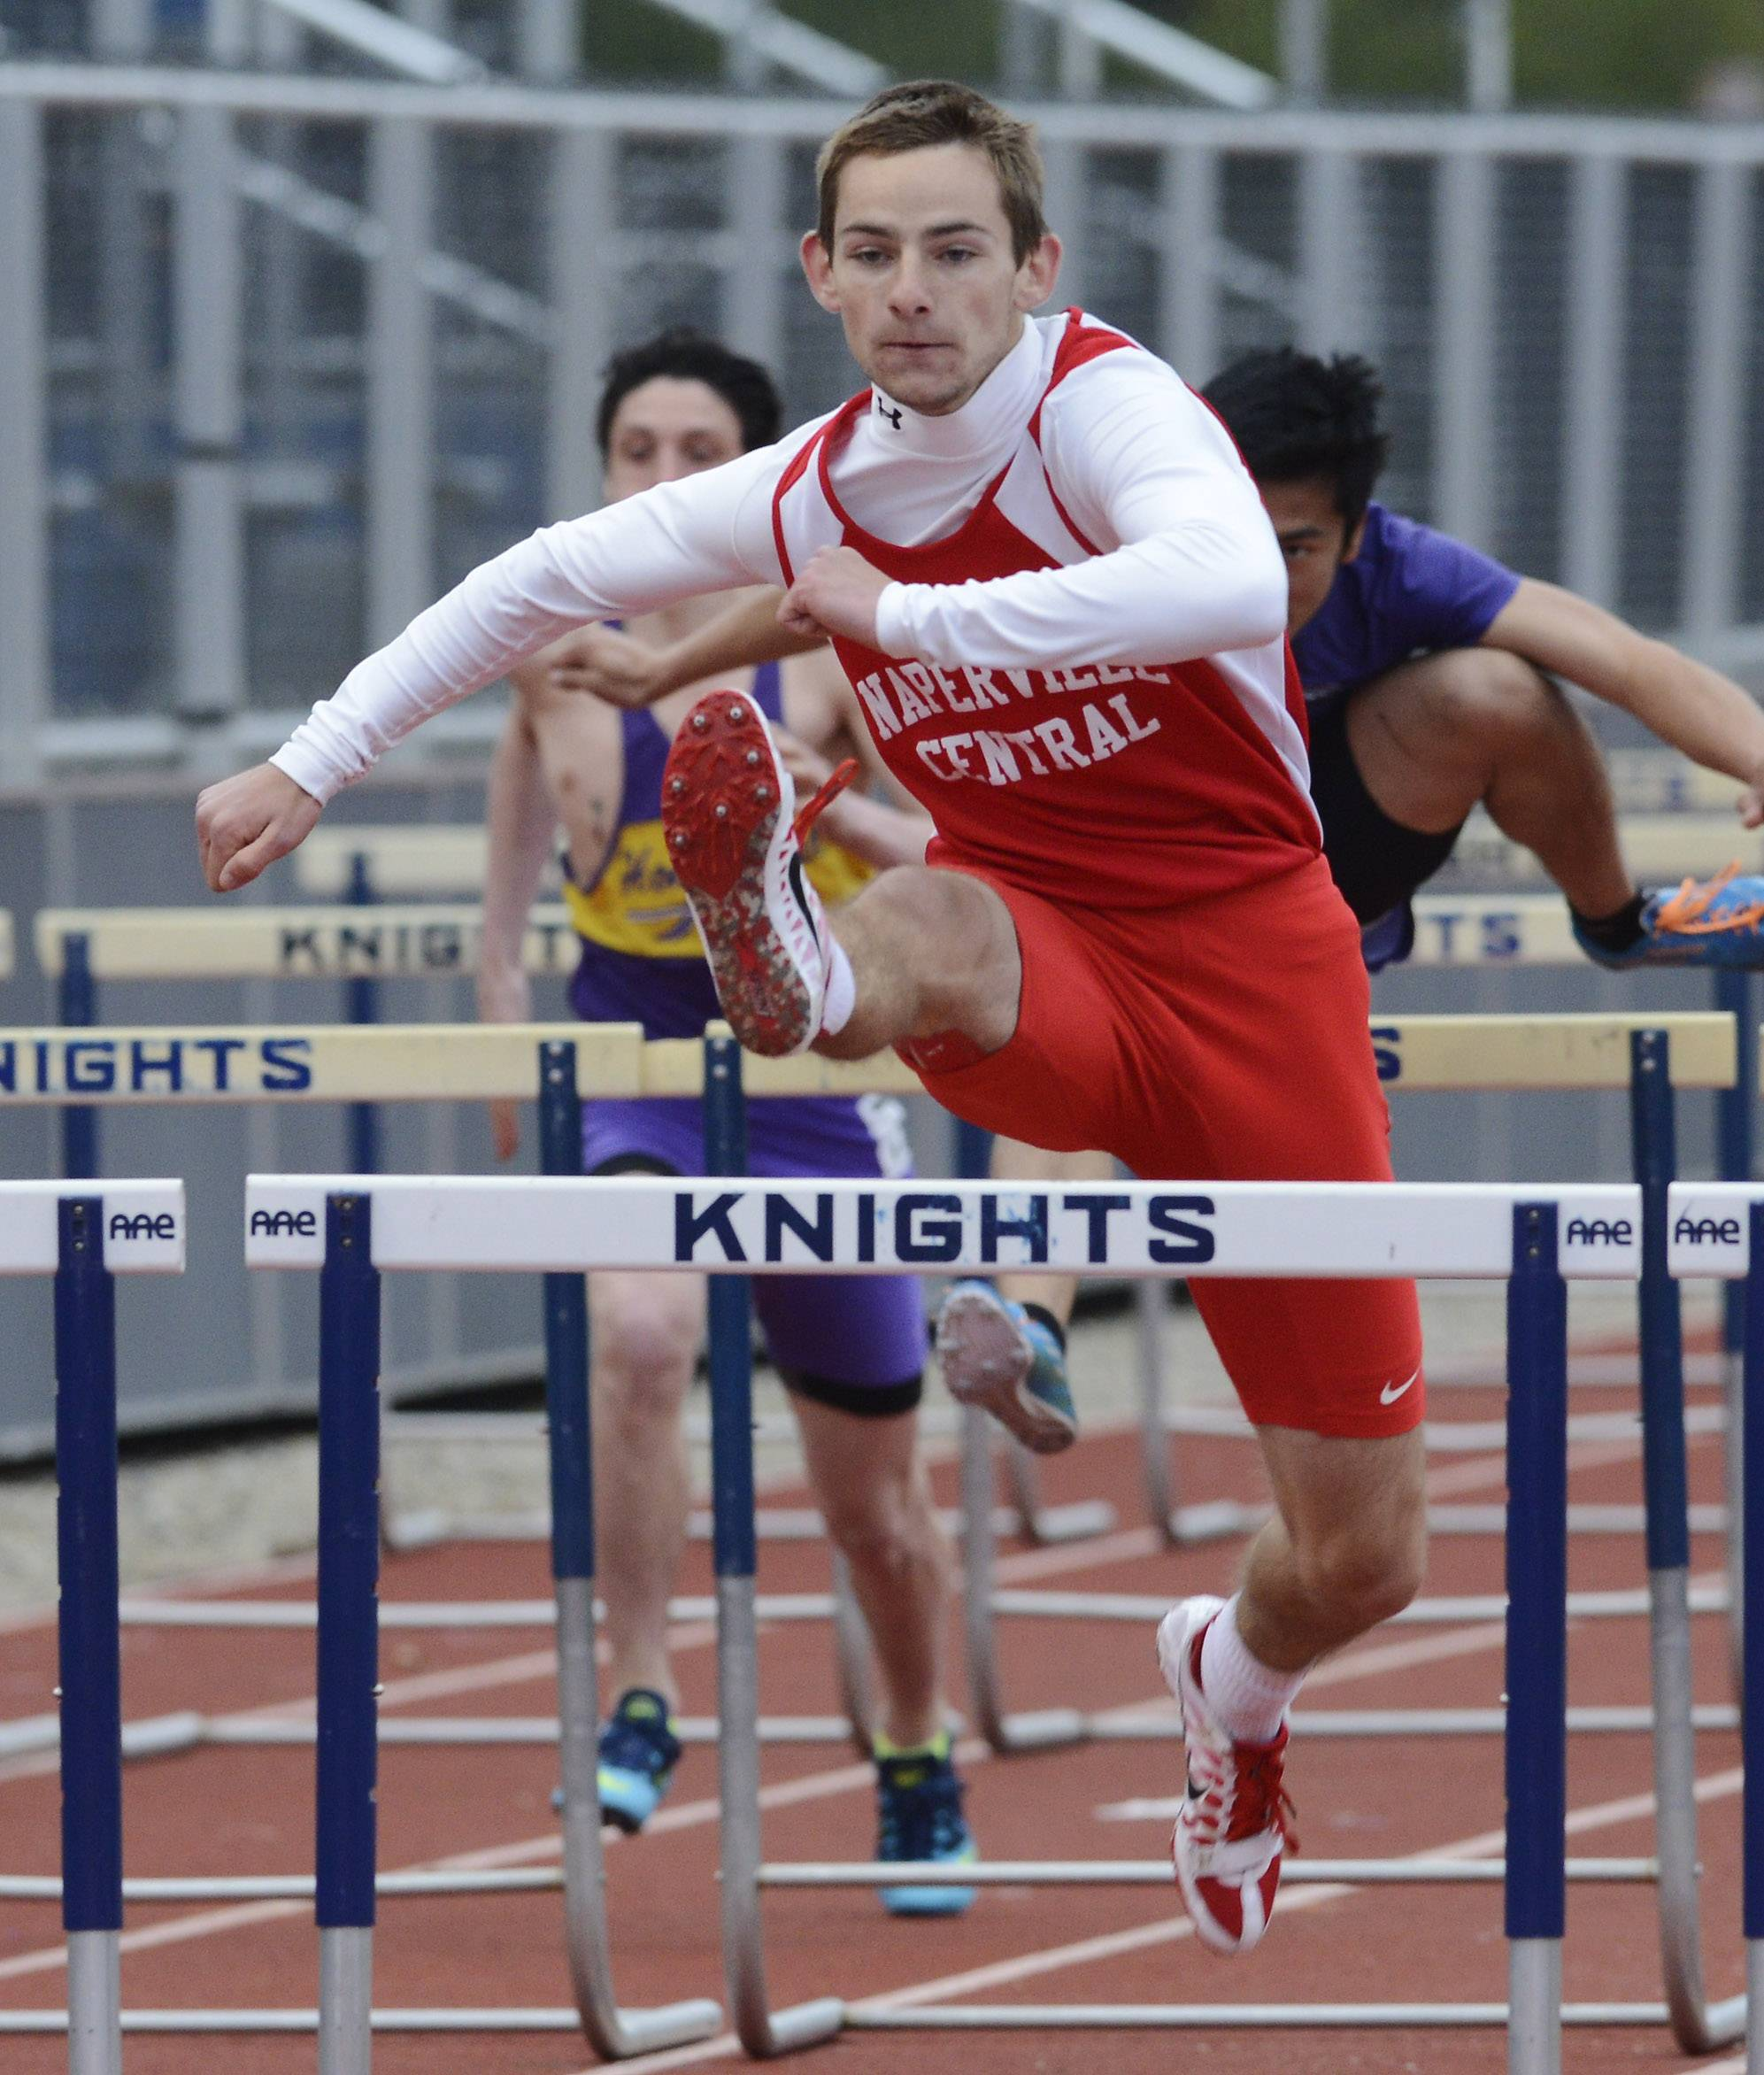 Michael Jopes of Naperville Central wins his heat of the 110-meter high hurdles during the Wanner Invitational at Prospect on Friday.